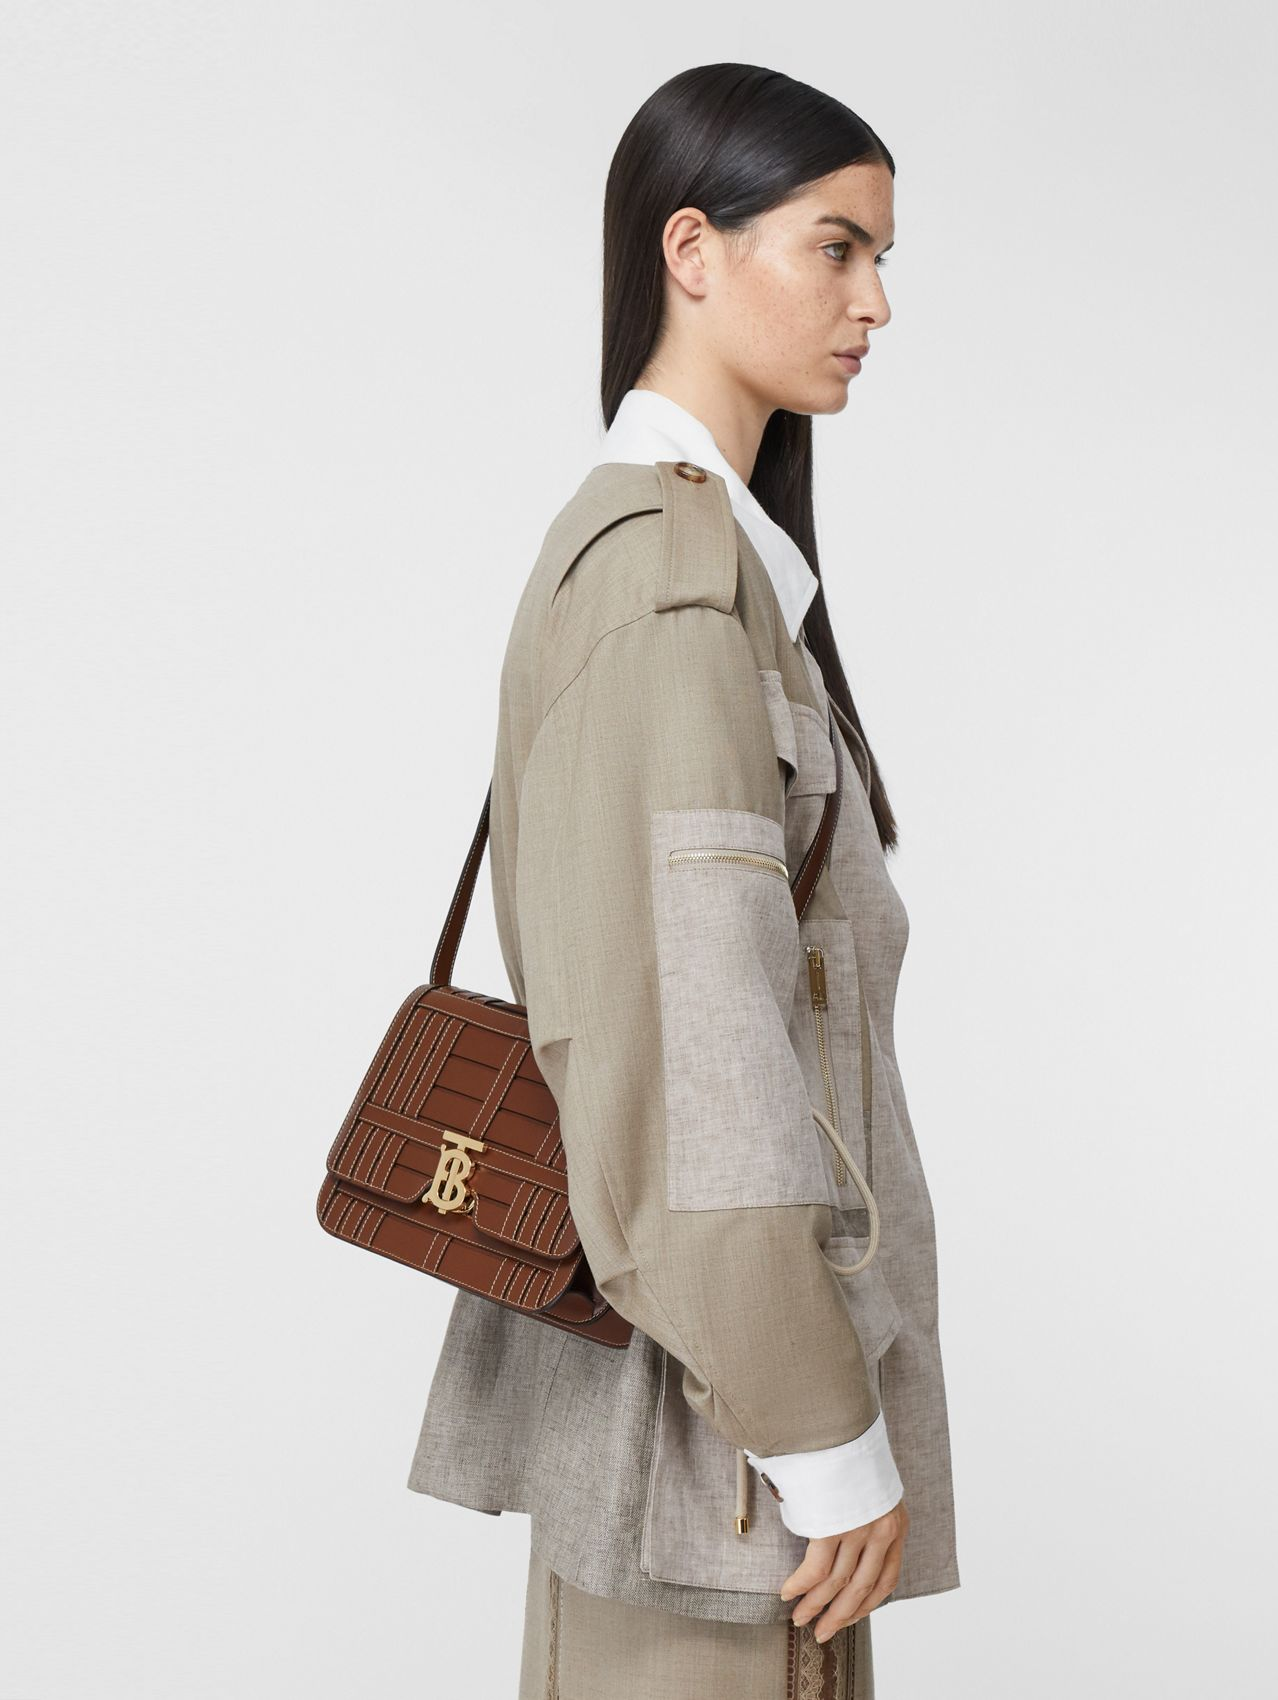 Medium Woven Leather TB Bag in Tan